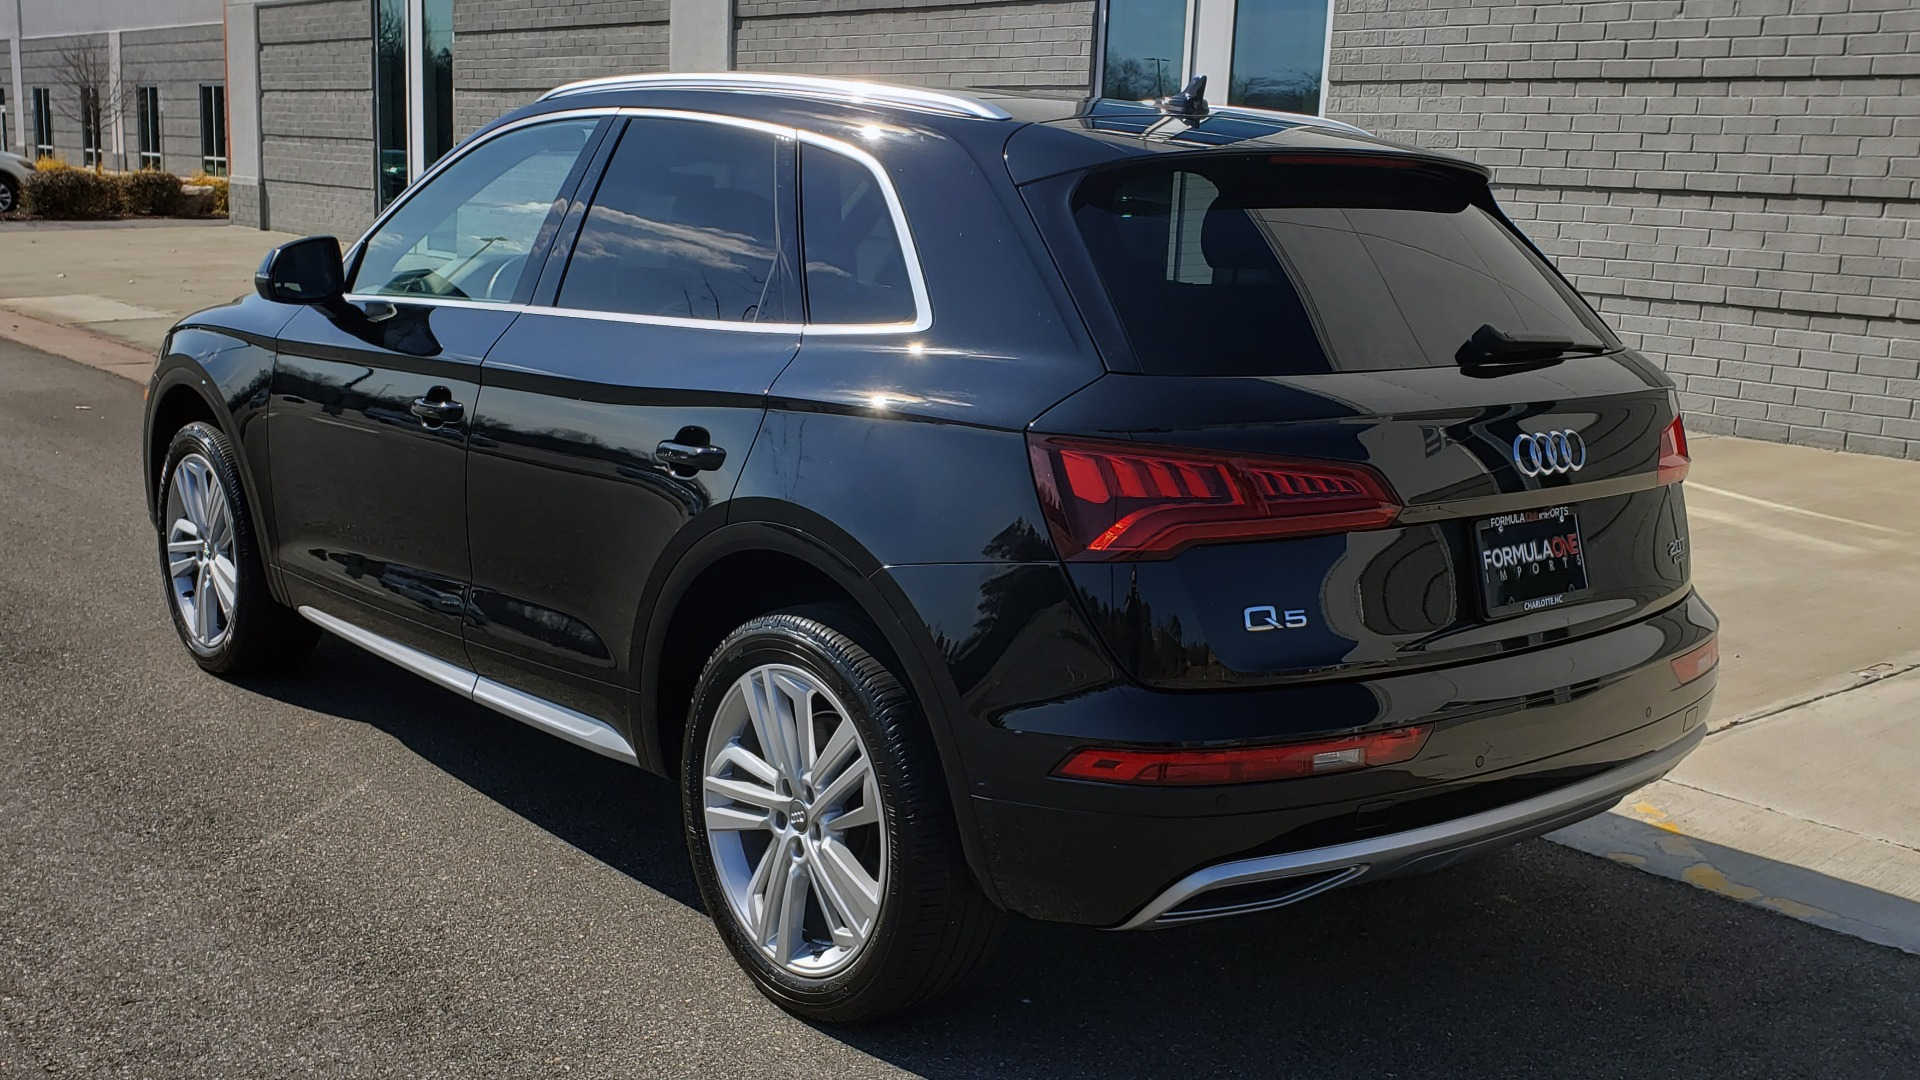 Used 2018 Audi Q5 PREMIUM PLUS / NAV / PANO-ROOF / CLD WTHR / REARVIEW for sale $30,435 at Formula Imports in Charlotte NC 28227 5